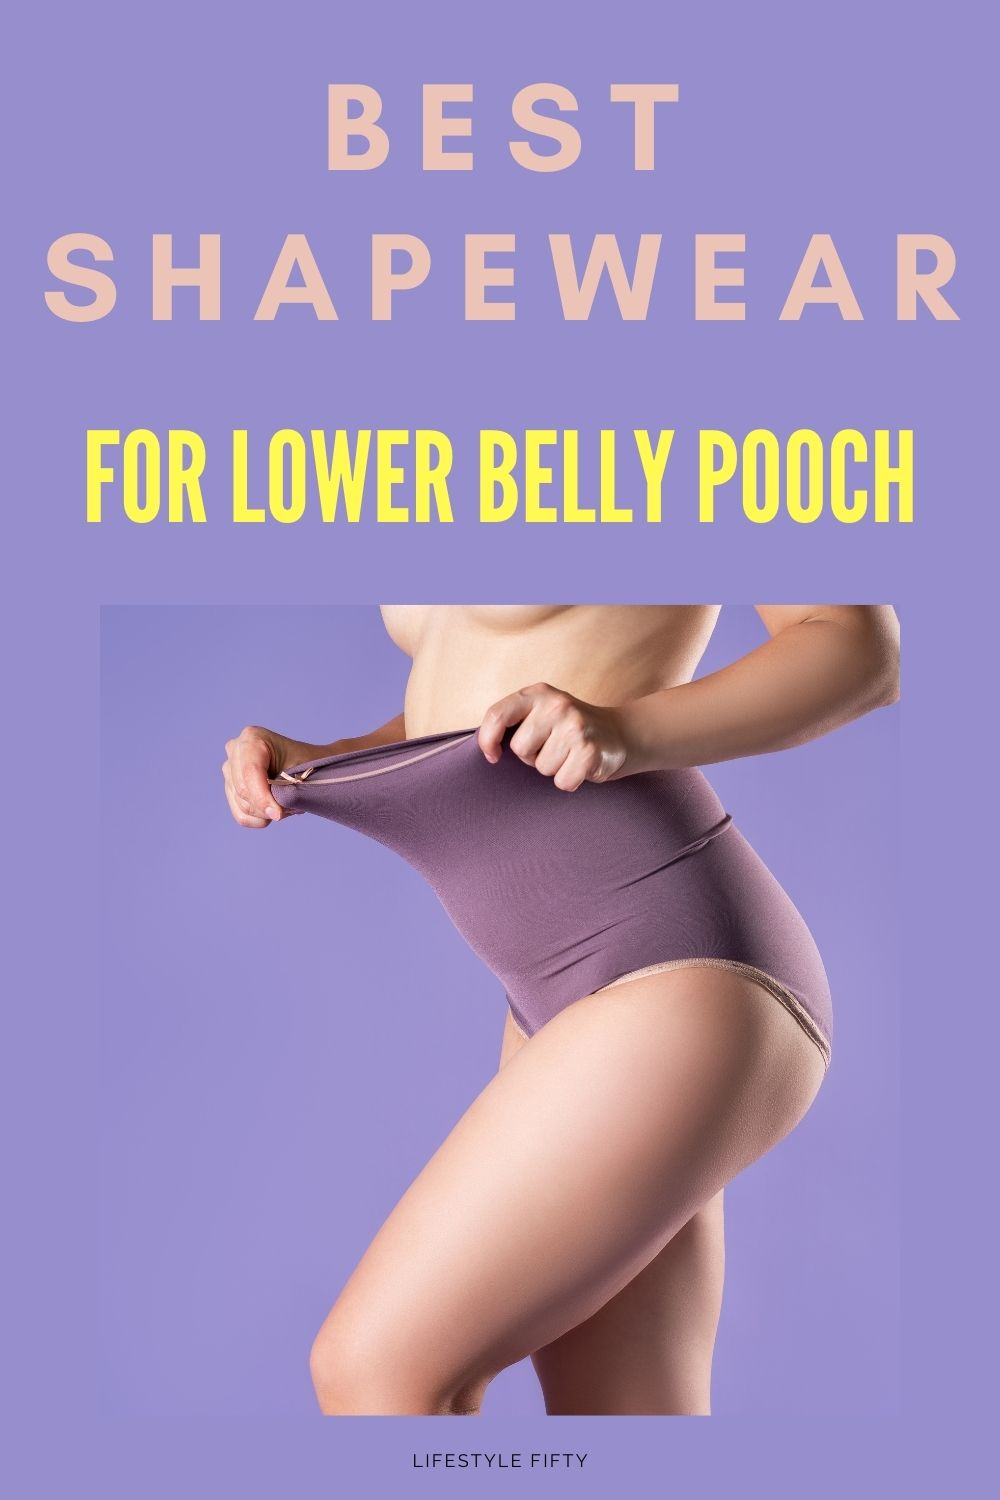 Best Shapewear for Lower Belly Pooch, text overlay, photo of shapewear.